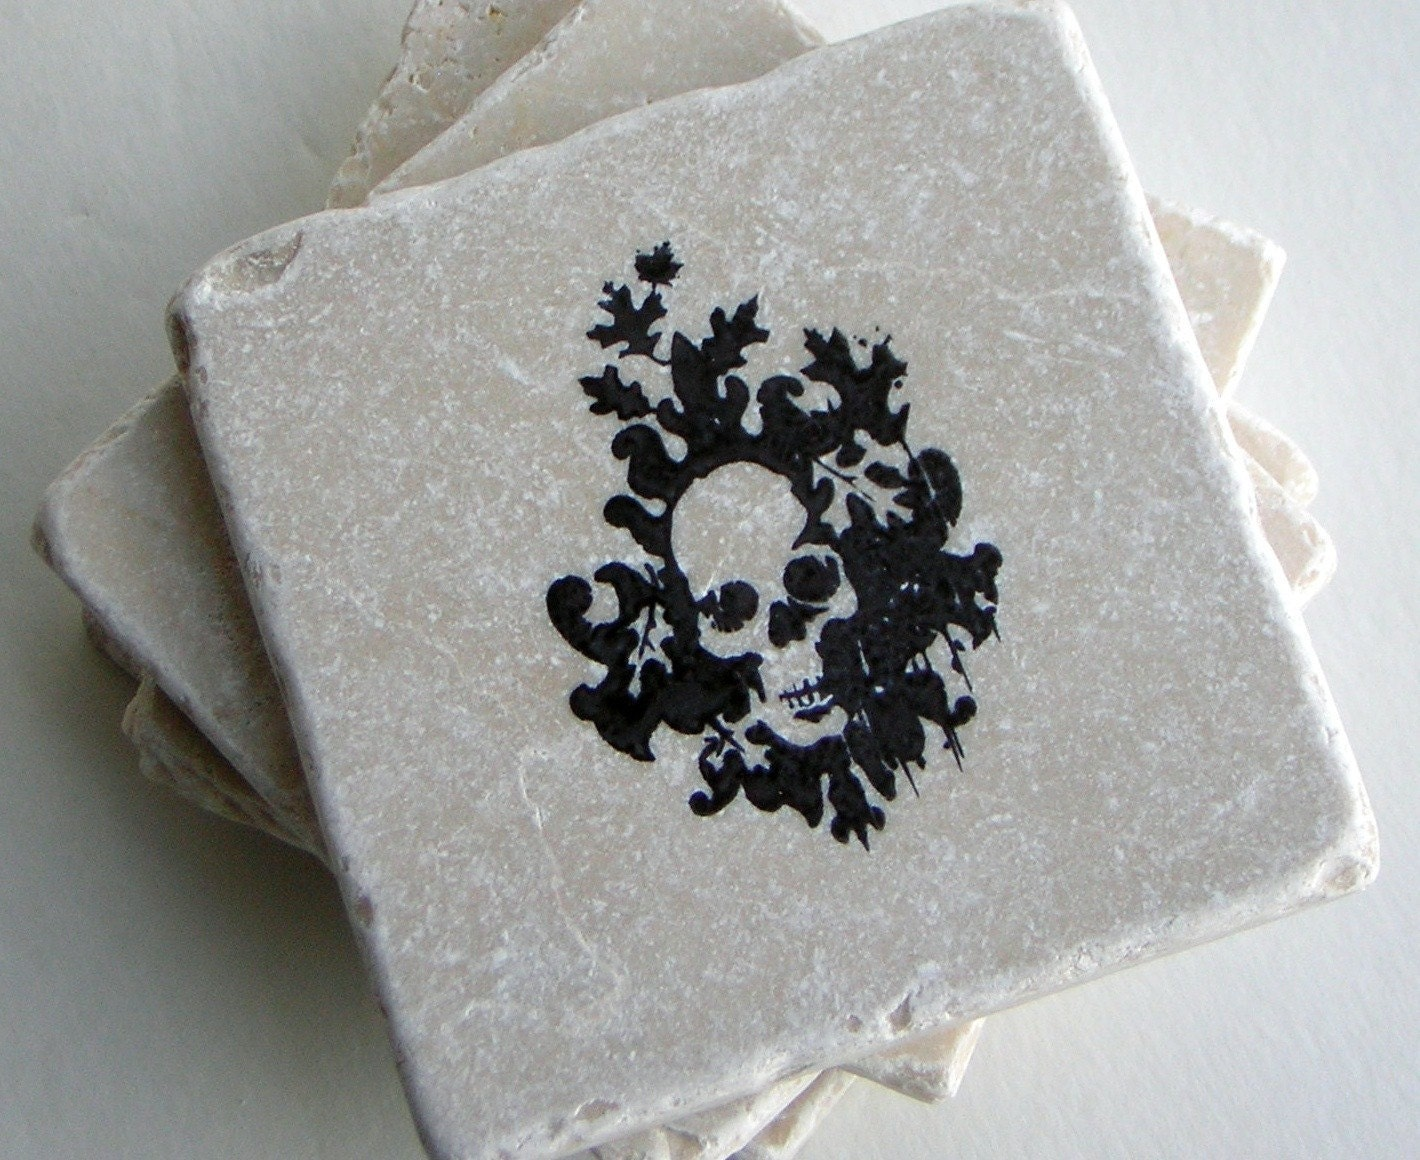 Skull Tile Coasters, Skeleton, Skulls, Day of the Dead Coasters, Goth Home Decor, Set of 4